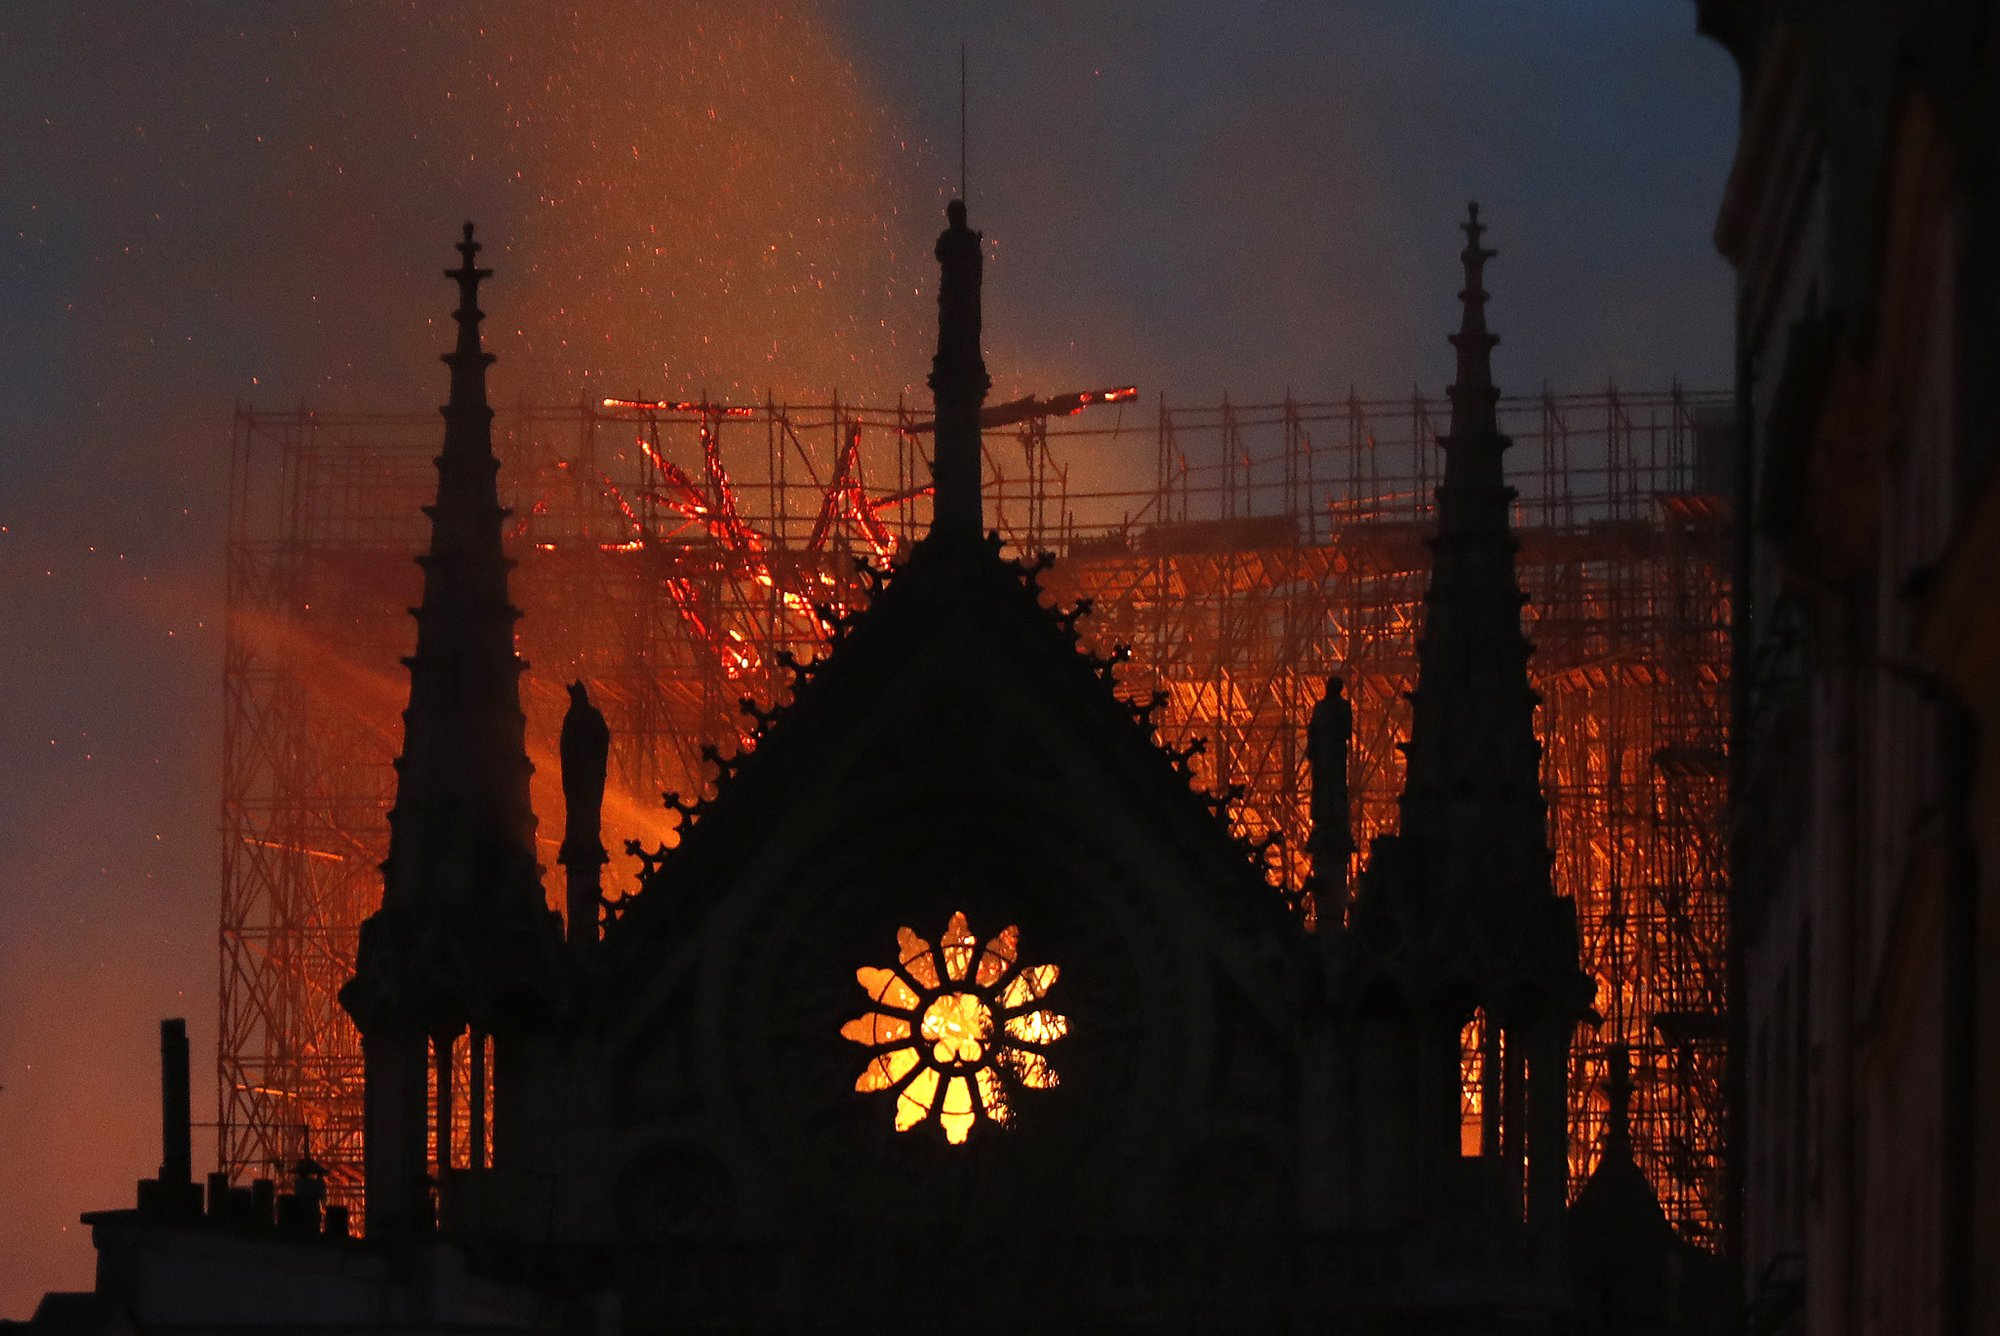 Iconic Notre Dame spire collapses during fire